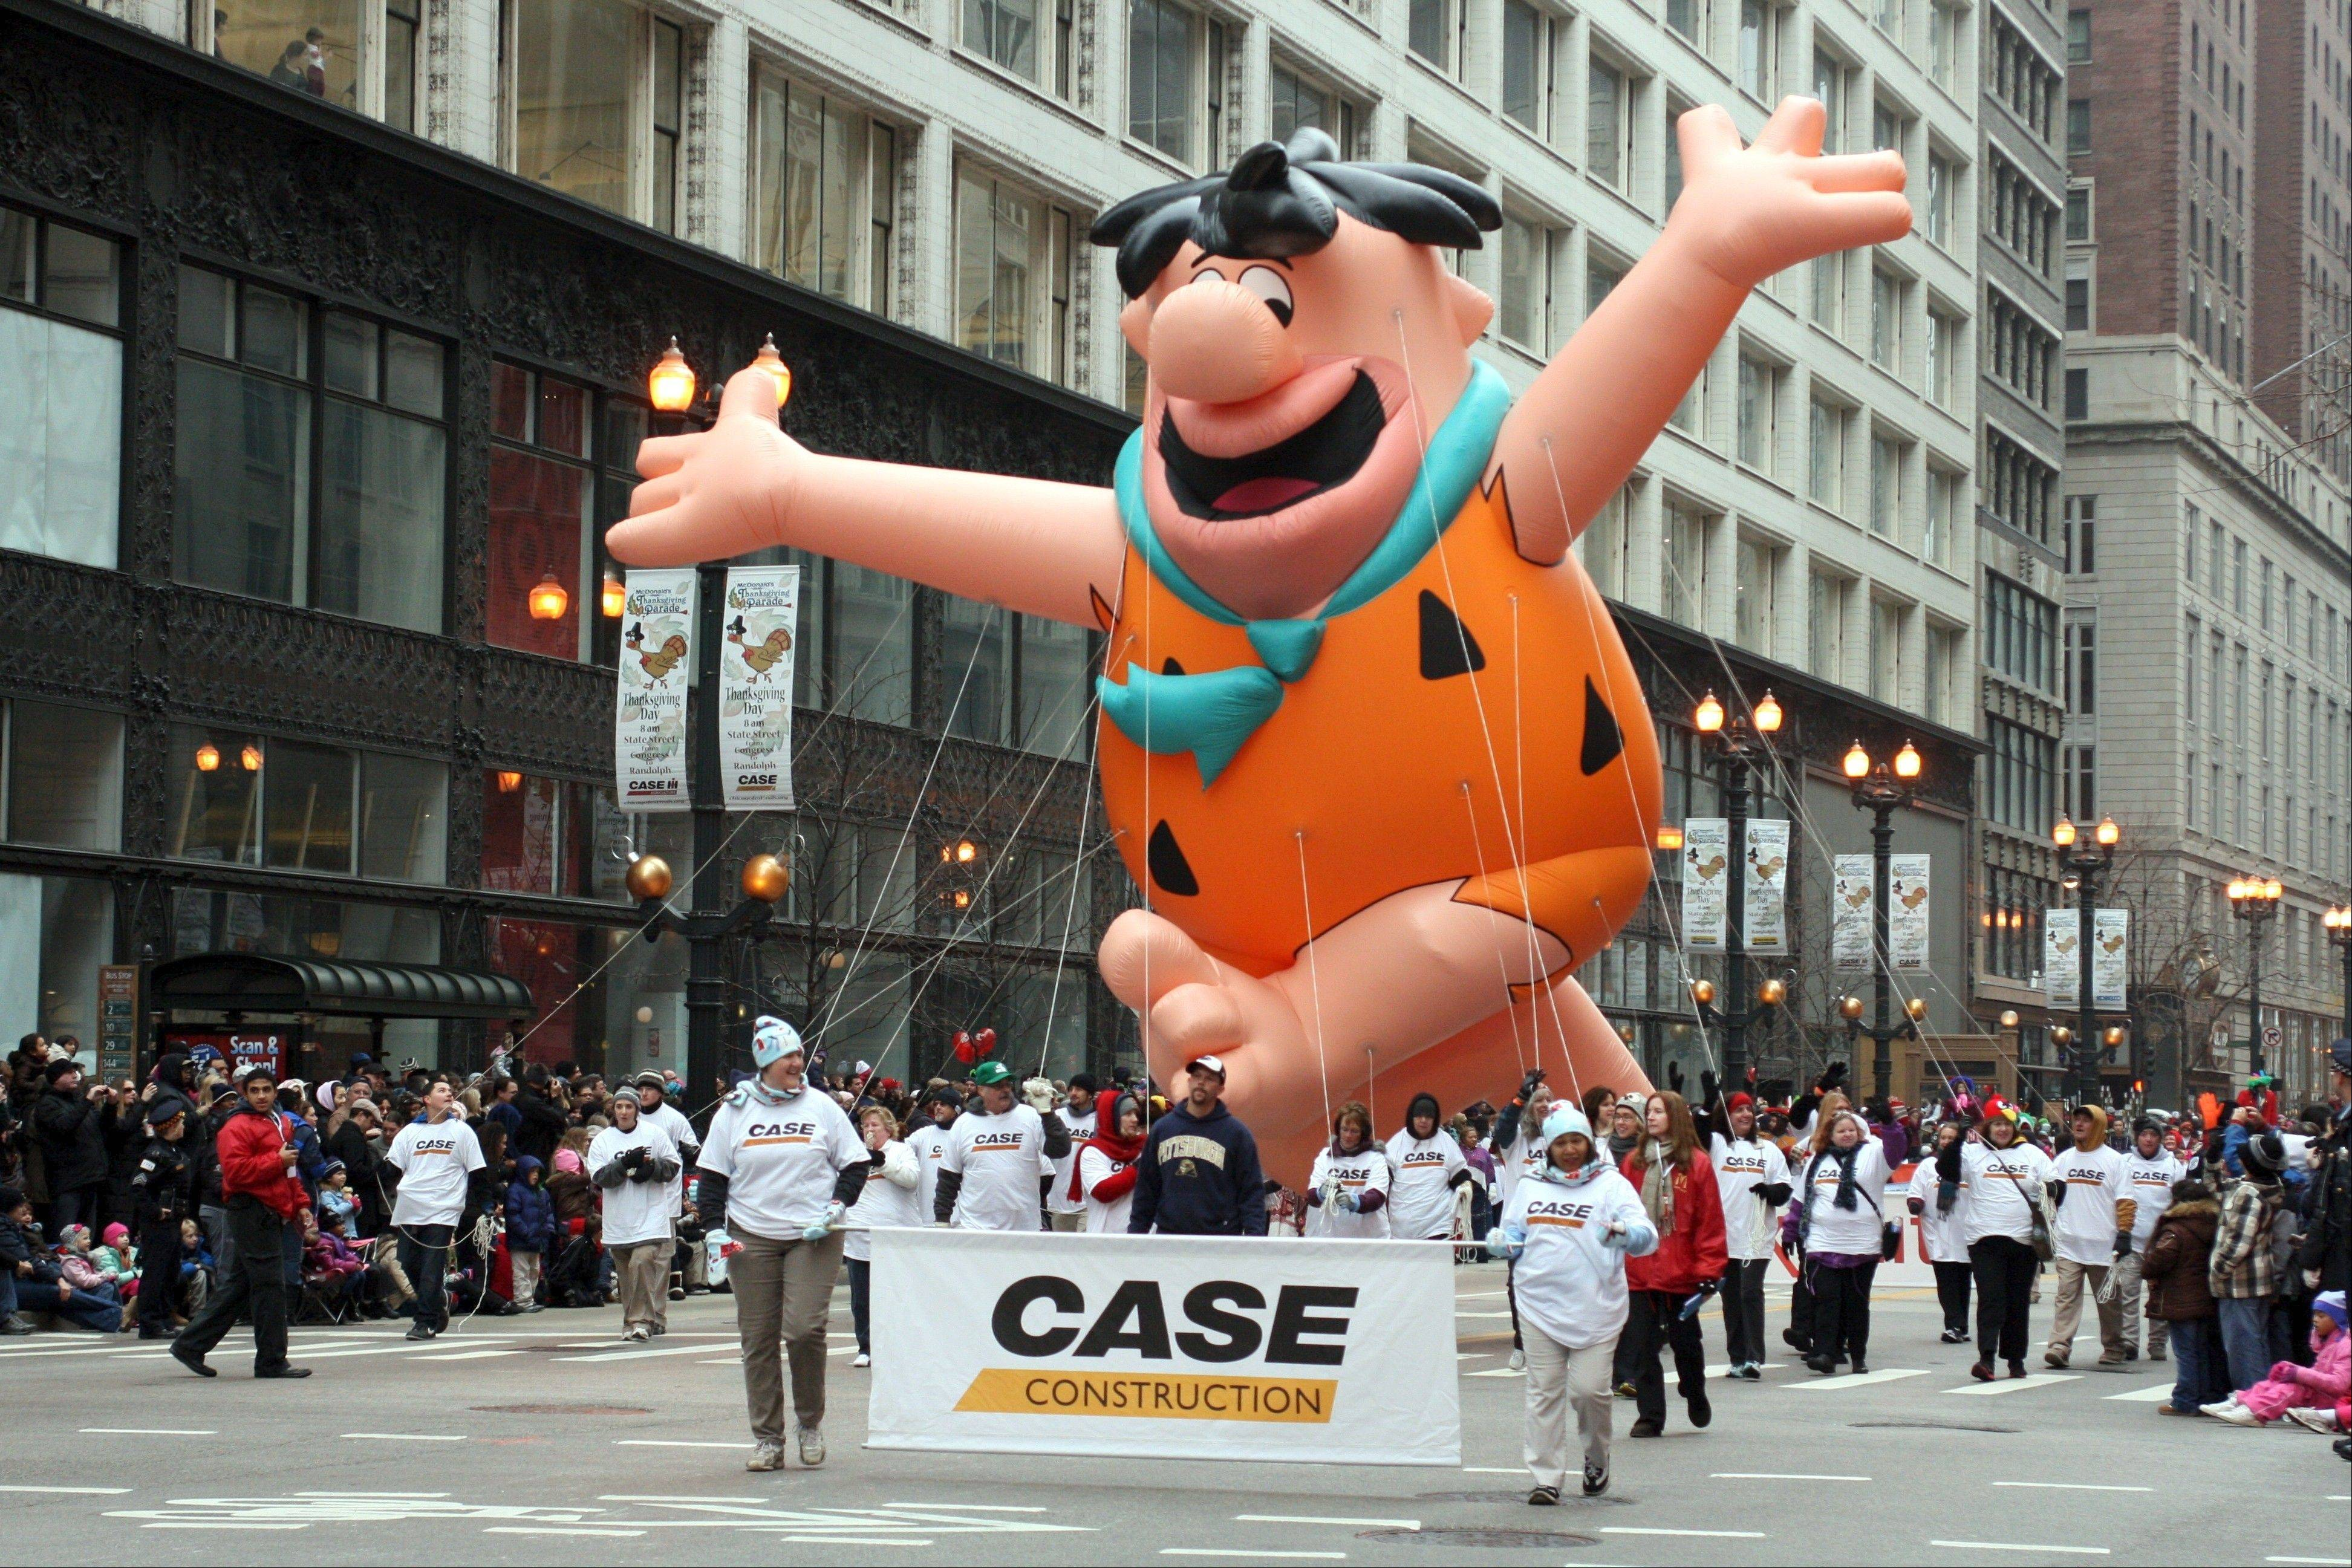 A contingent from Case Construction tends to an oversized balloon of Fred Flintstone in a previous edition of the McDonald's Thanksgiving Day Parade in Chicago.